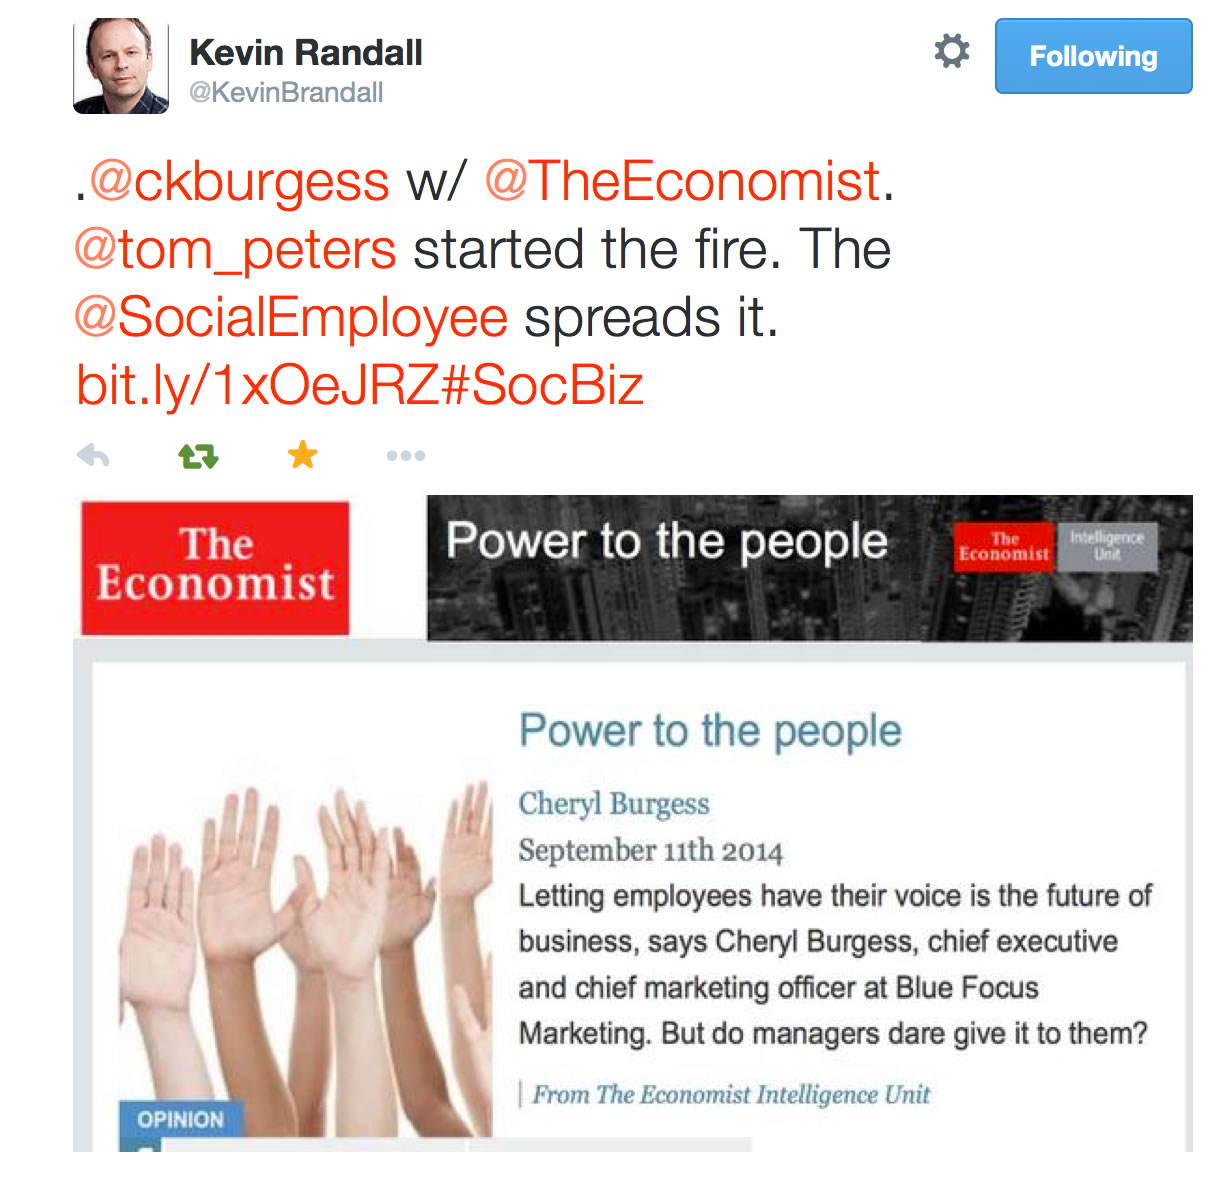 Tom Peters started fire Kevin Randall tweet